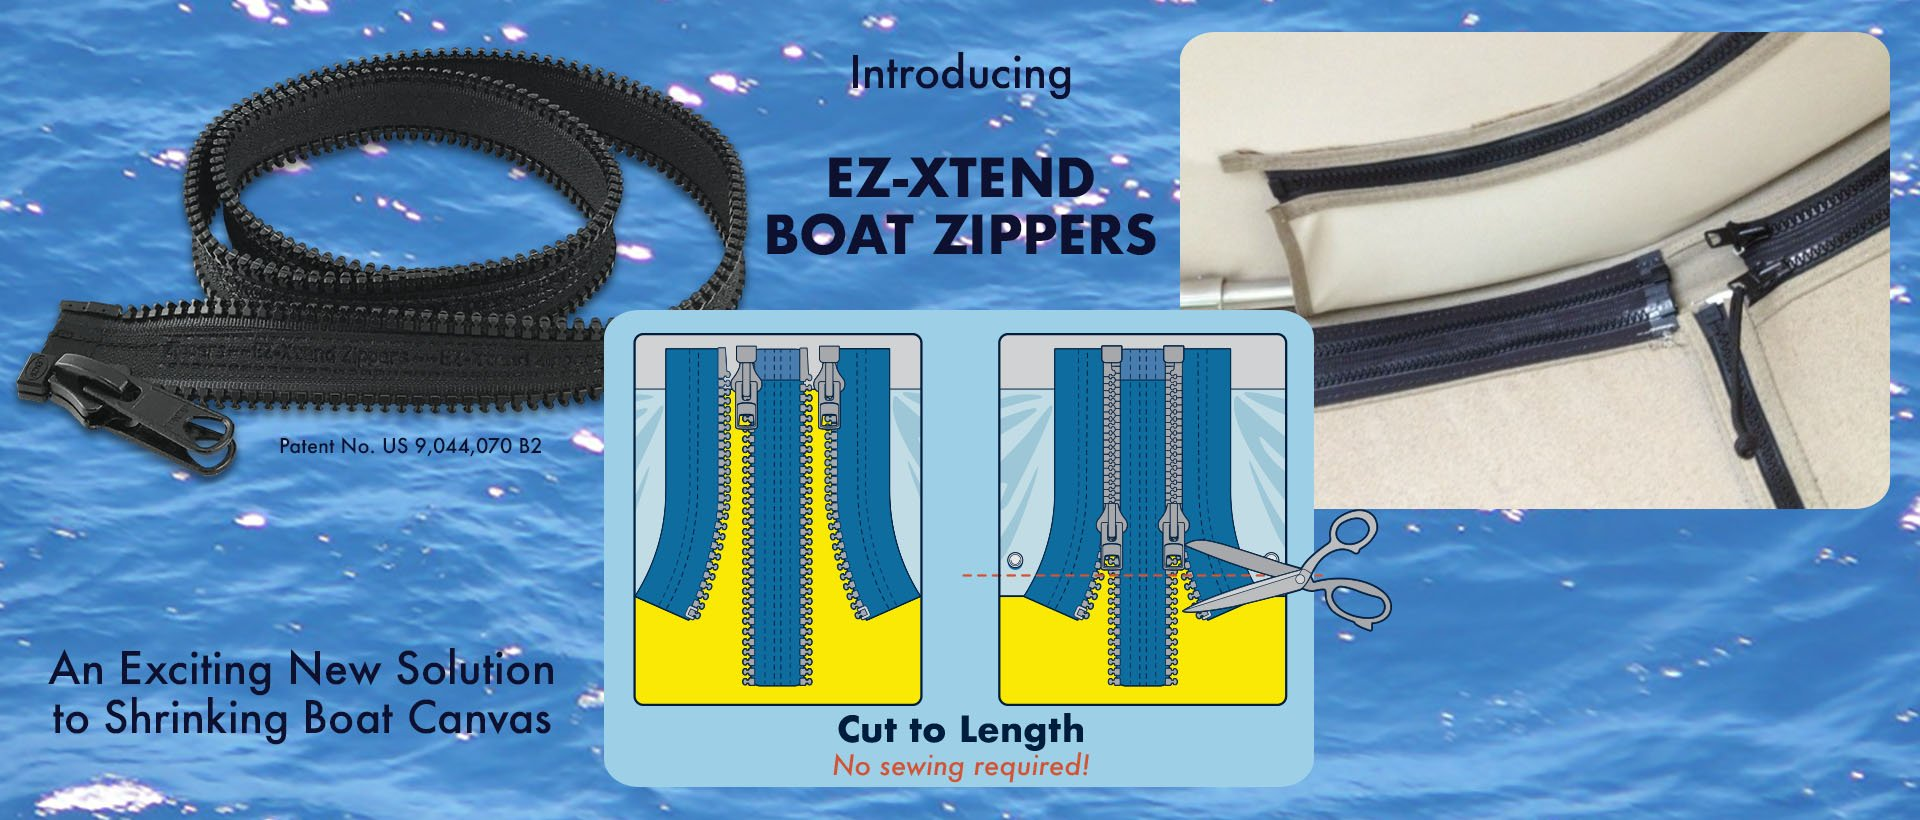 EZ-Xtend Boat Zipper Demo Photo